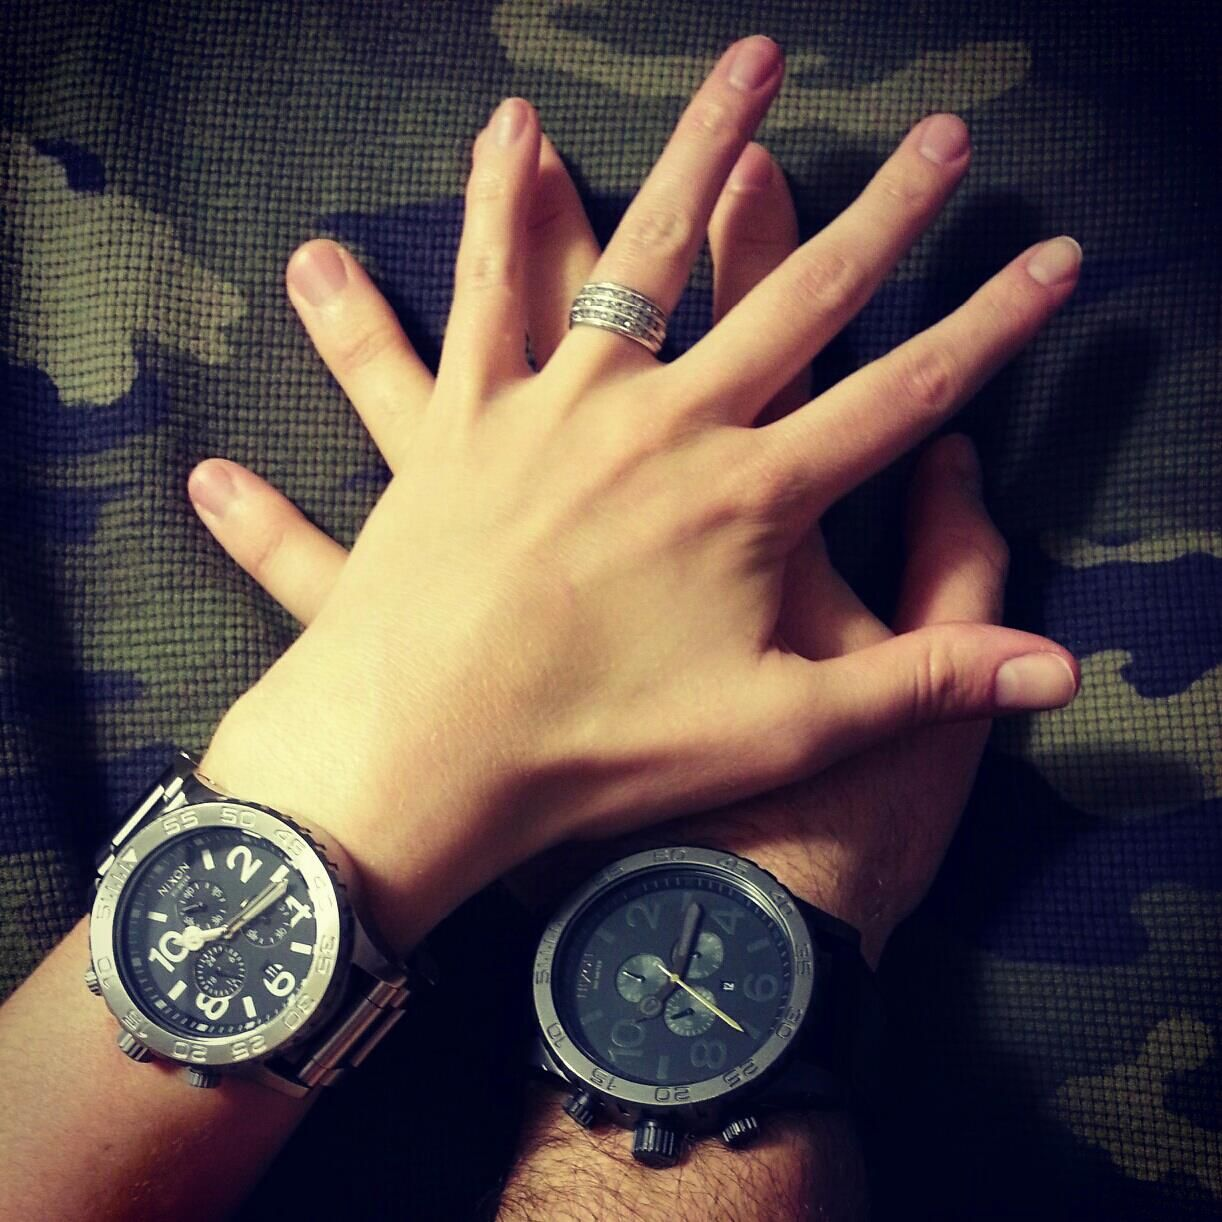 Nixon His and Hers Watch contest | Some of the expensive watches ...